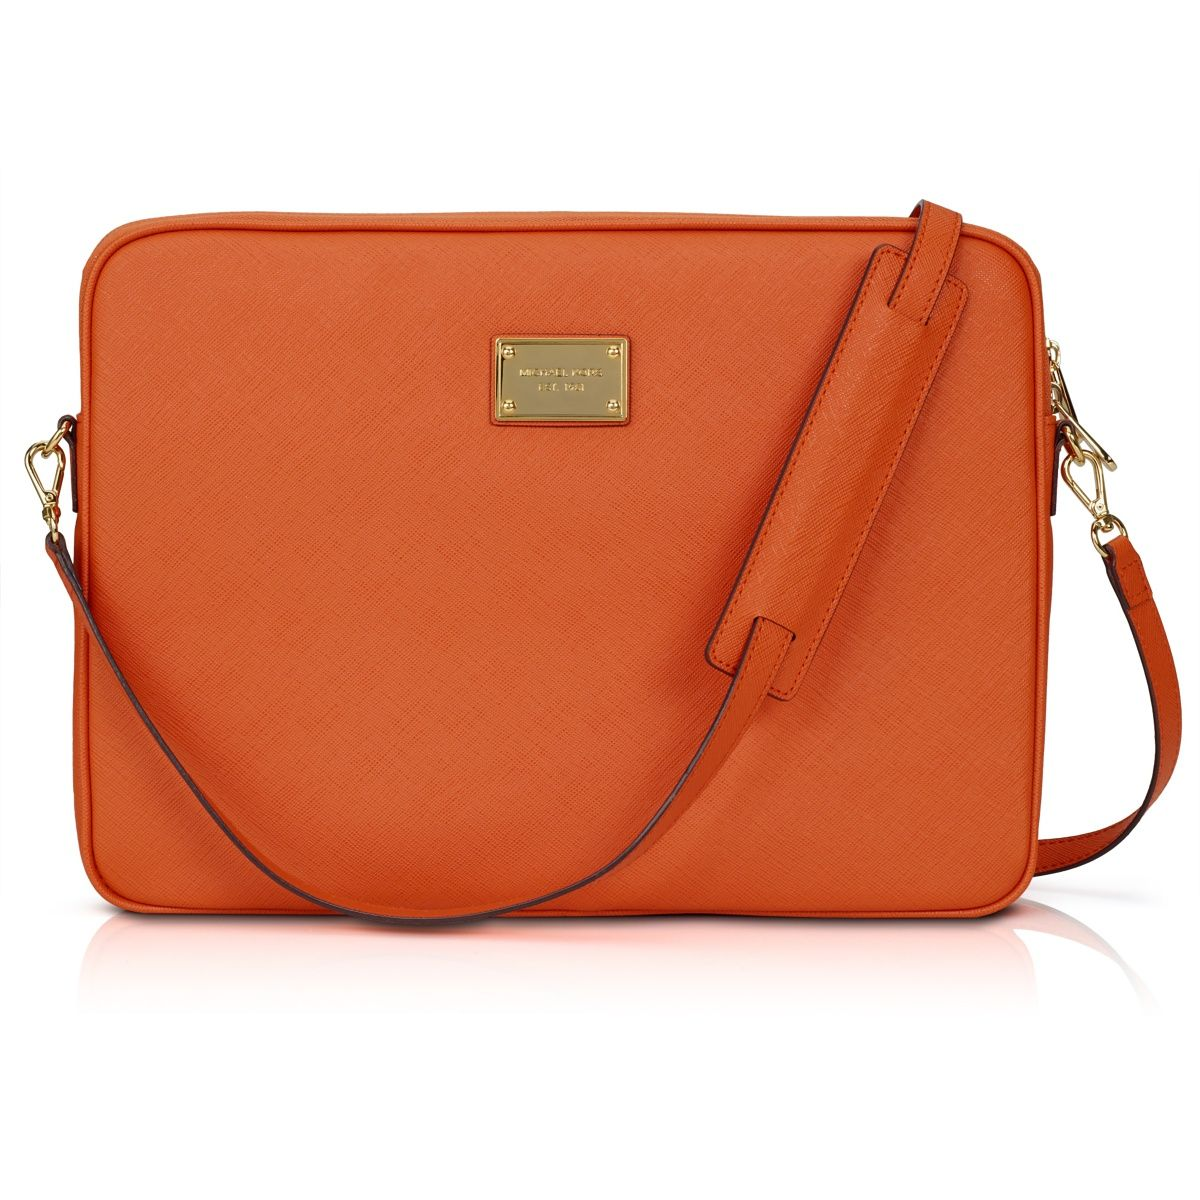 Michael Kors Saffiano Tangerine Mac Laptop Case Well I Couldn T Justify The Little Jet Set Handbag But This Is Clearly A Practical Requirement